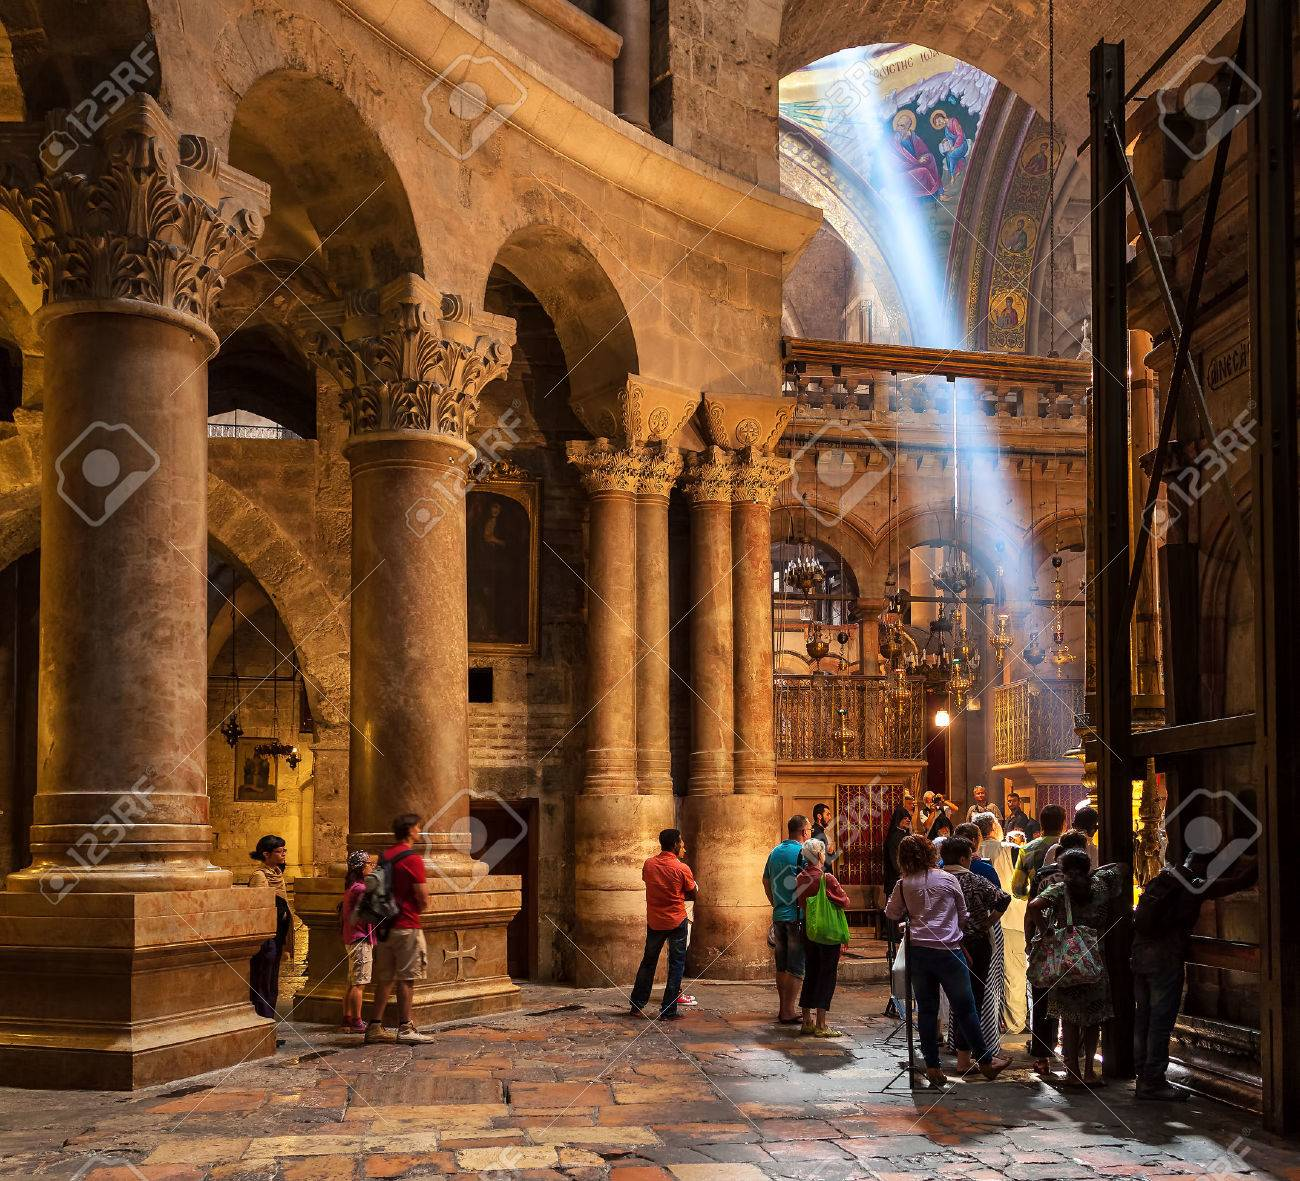 JERUSALEM, ISRAEL - JULY 26, 2015: People inside the Church of the Holy Sepulchre - holy place where according christian tradition Jesus was crucified, buried and resurrected. - 62872611